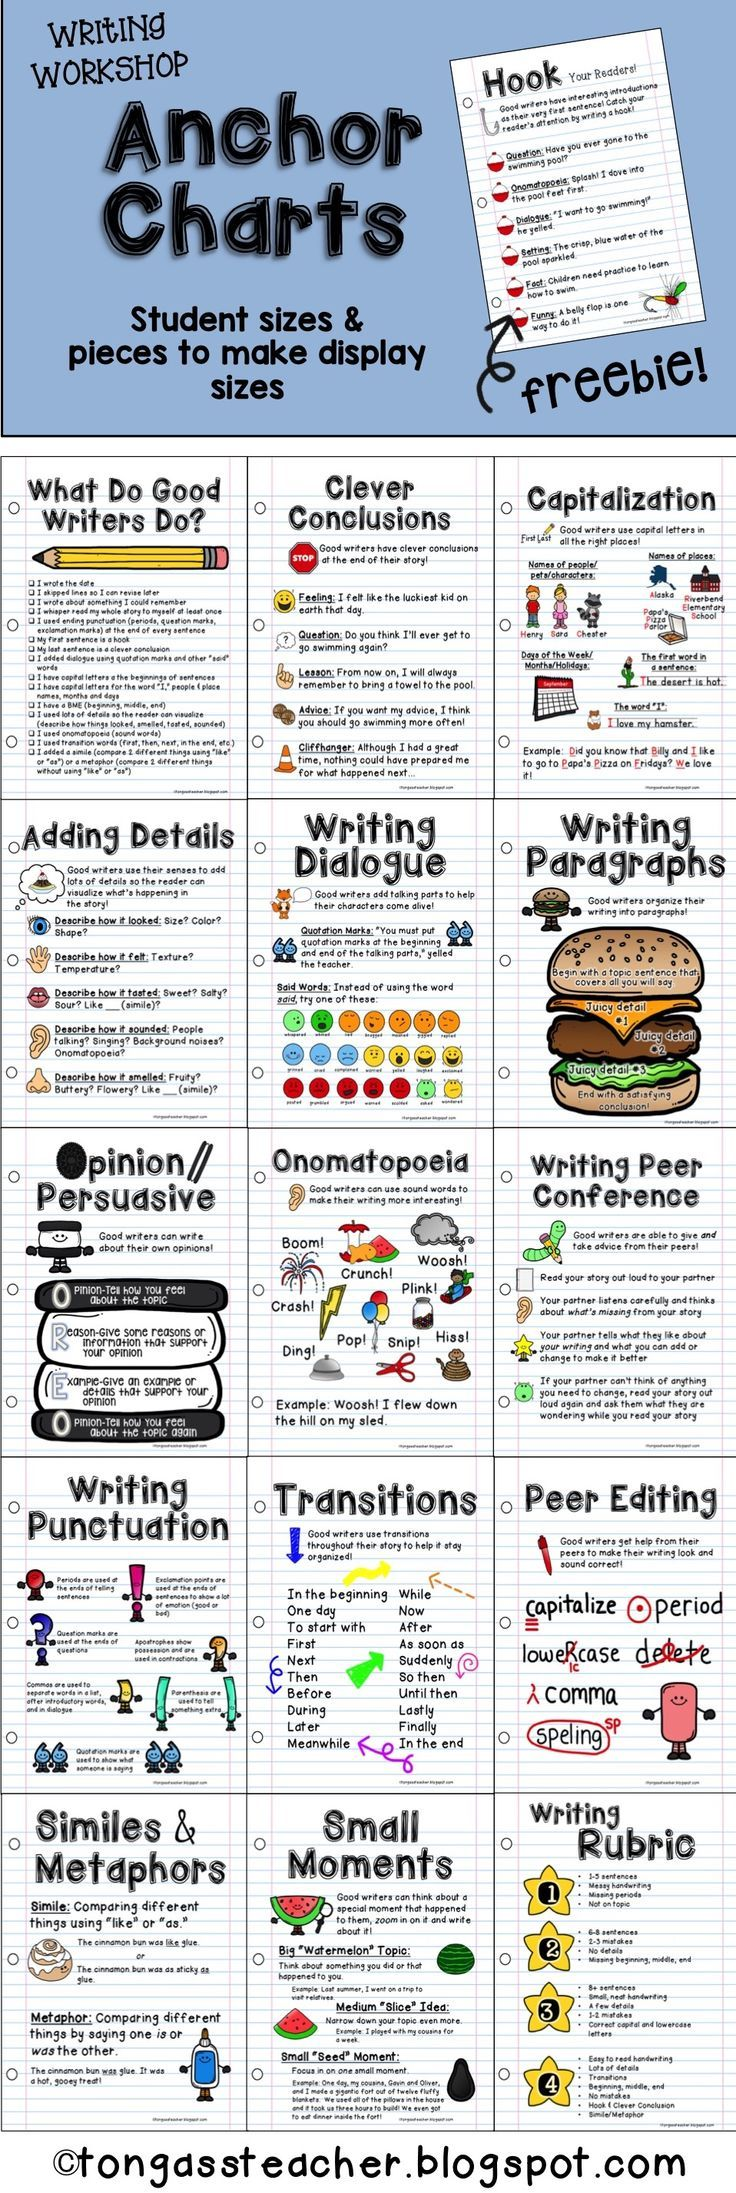 Writing Workshop Anchor Charts